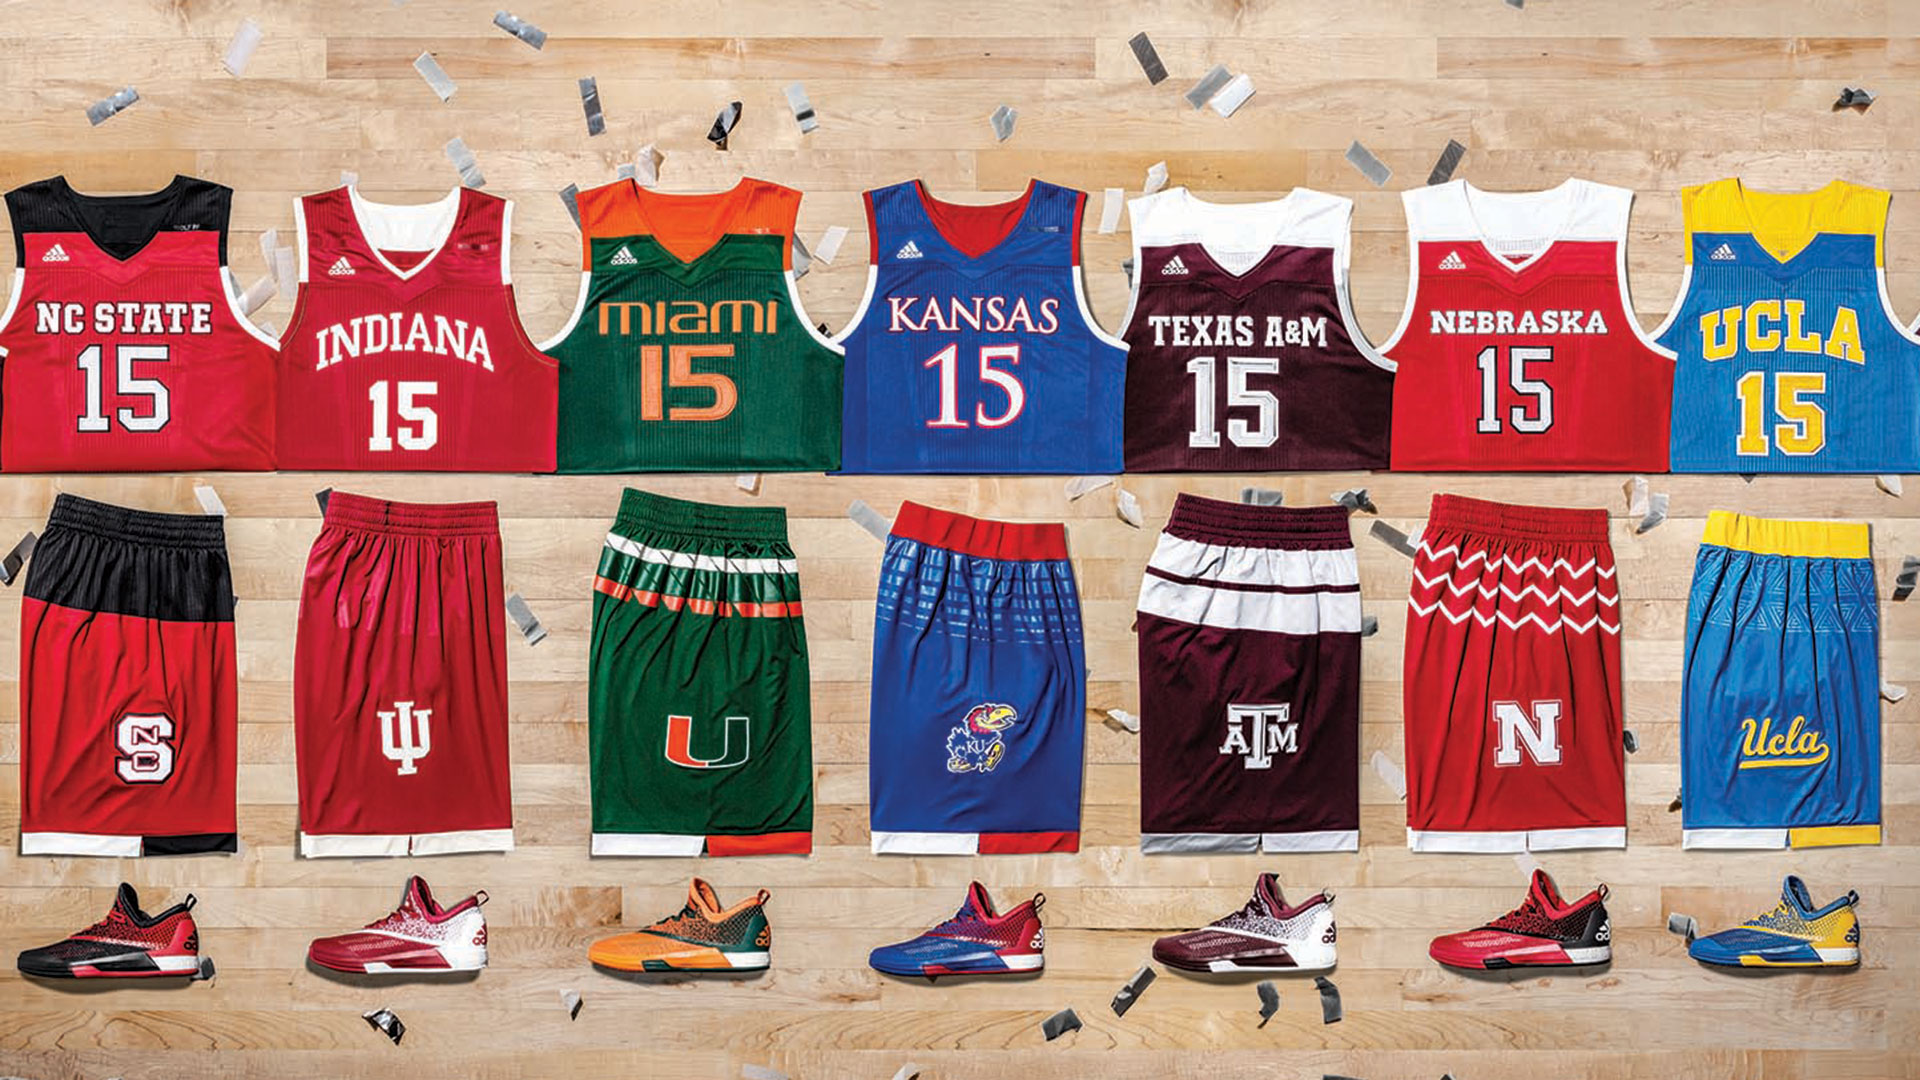 Ncaa basketball uniforms